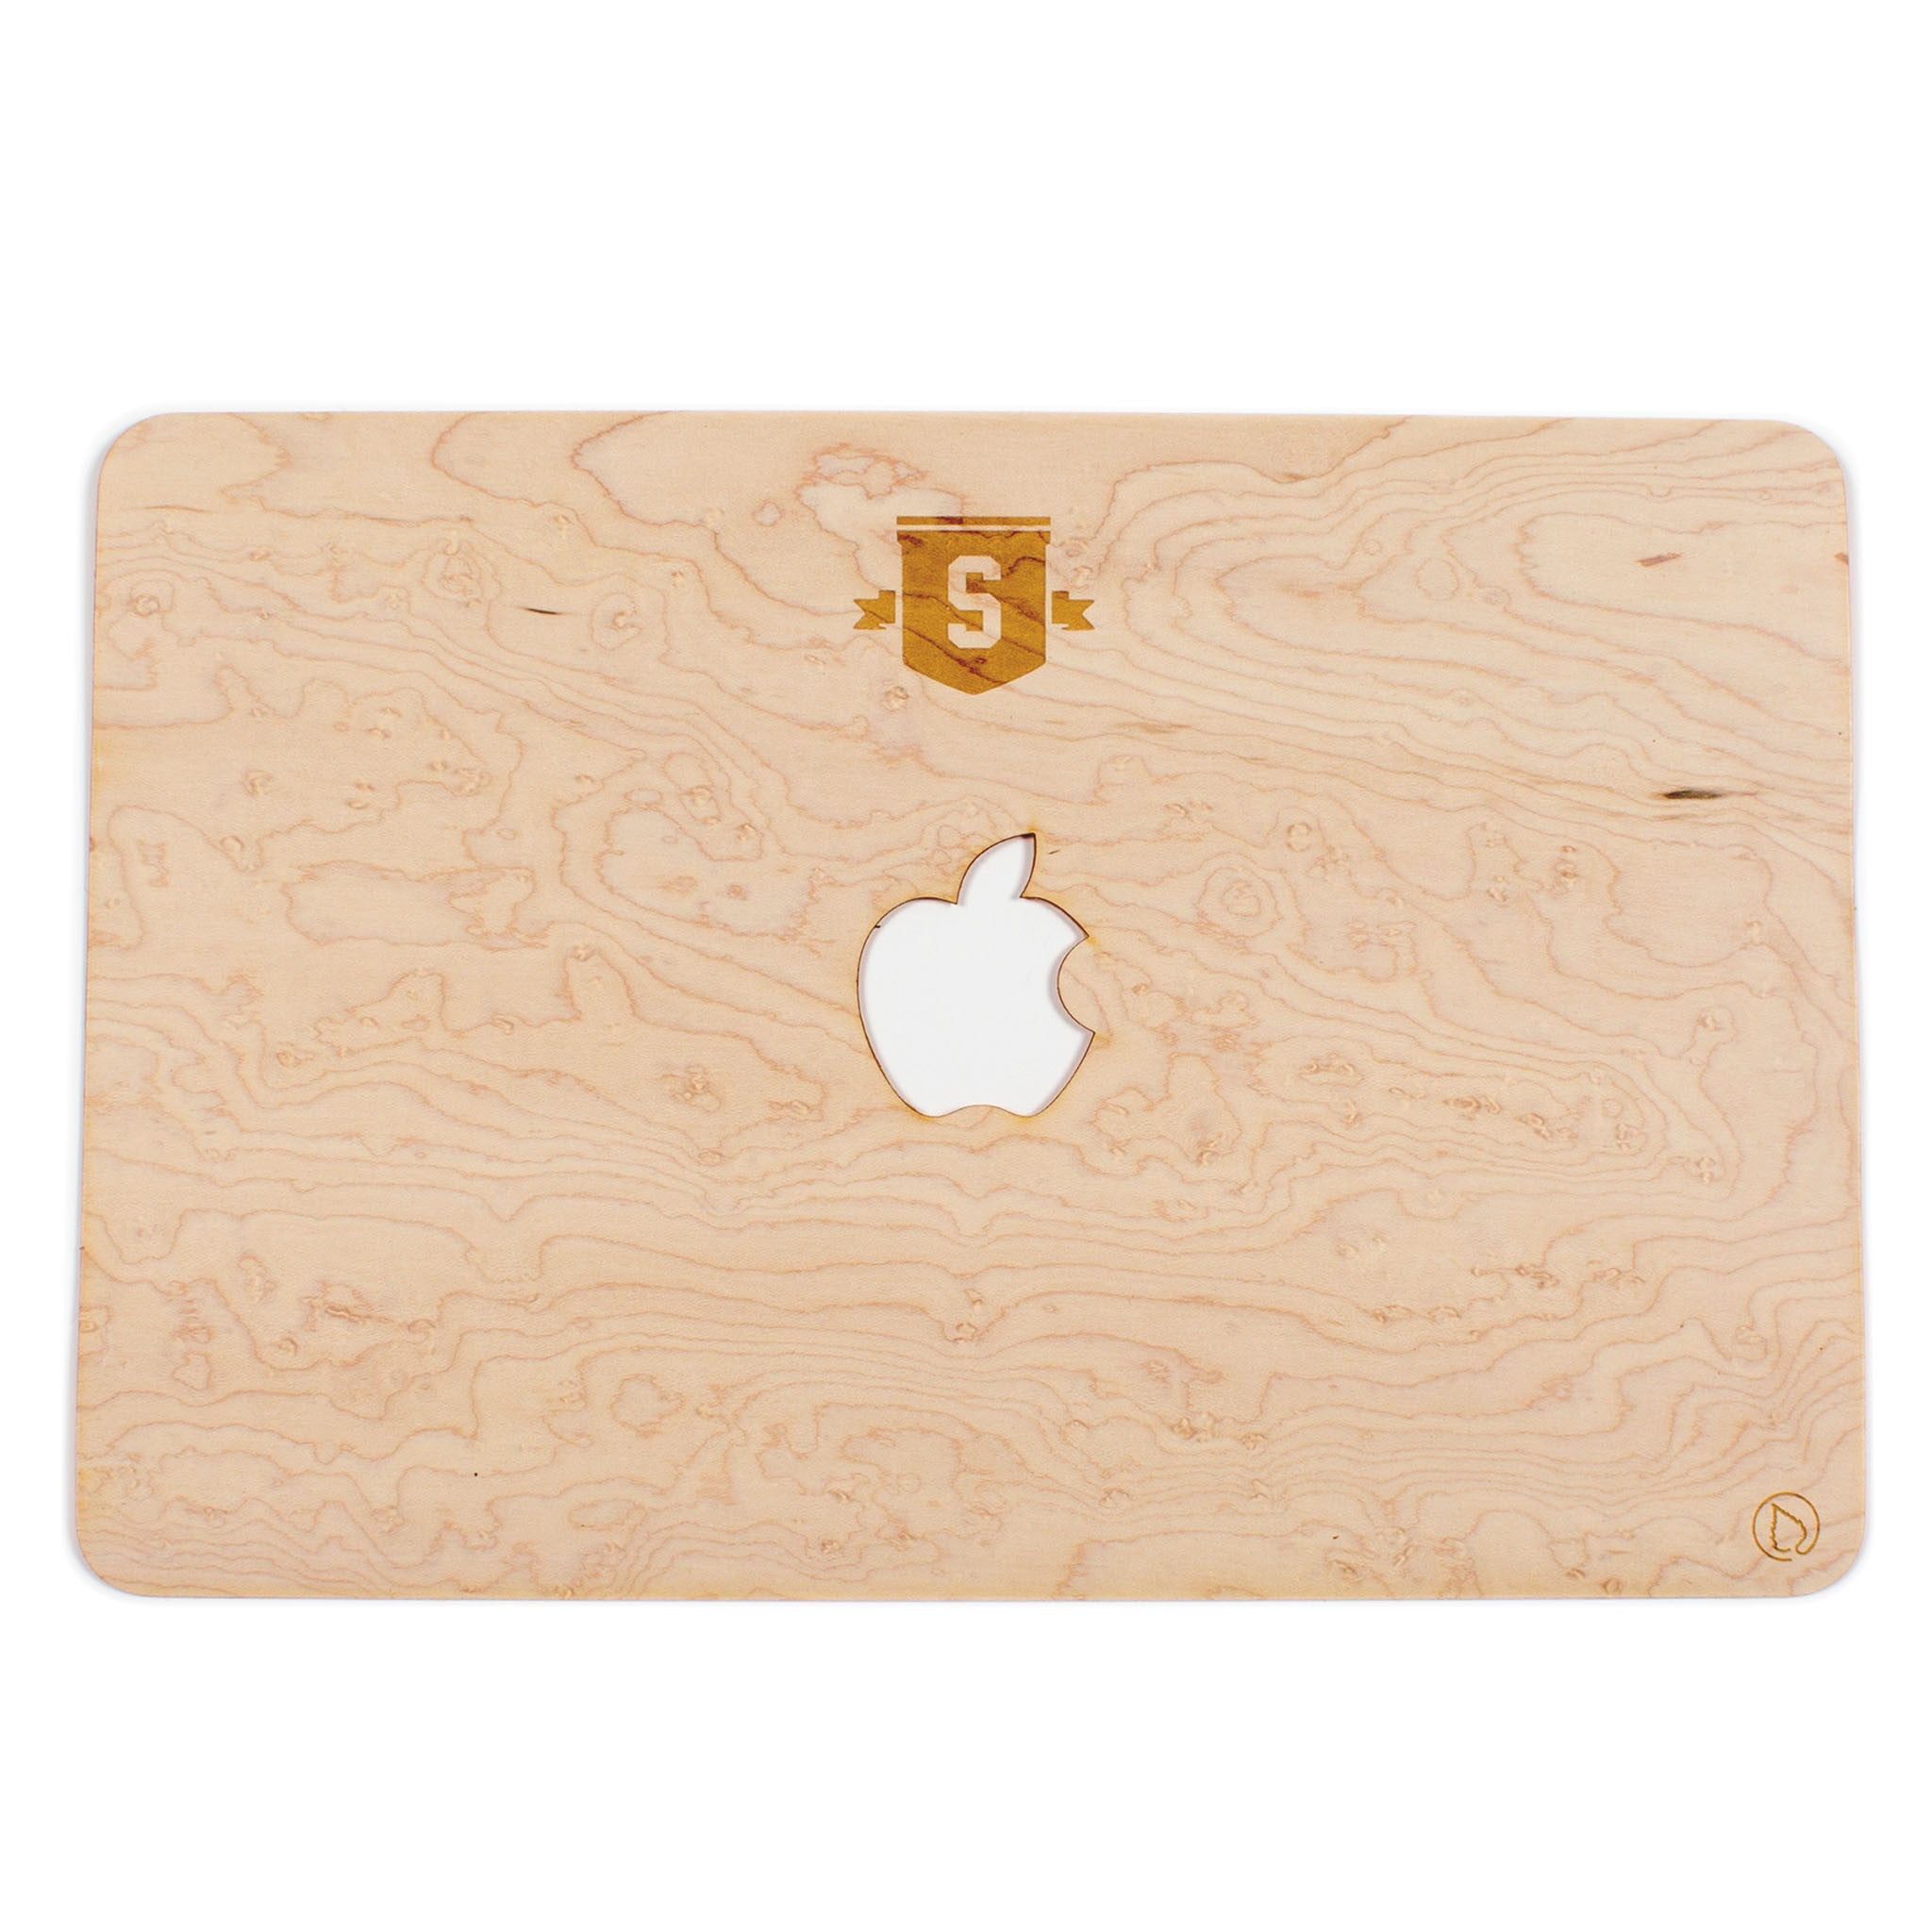 "Lastu Macbook 15"" cover Visa - Stoked Boardshop"